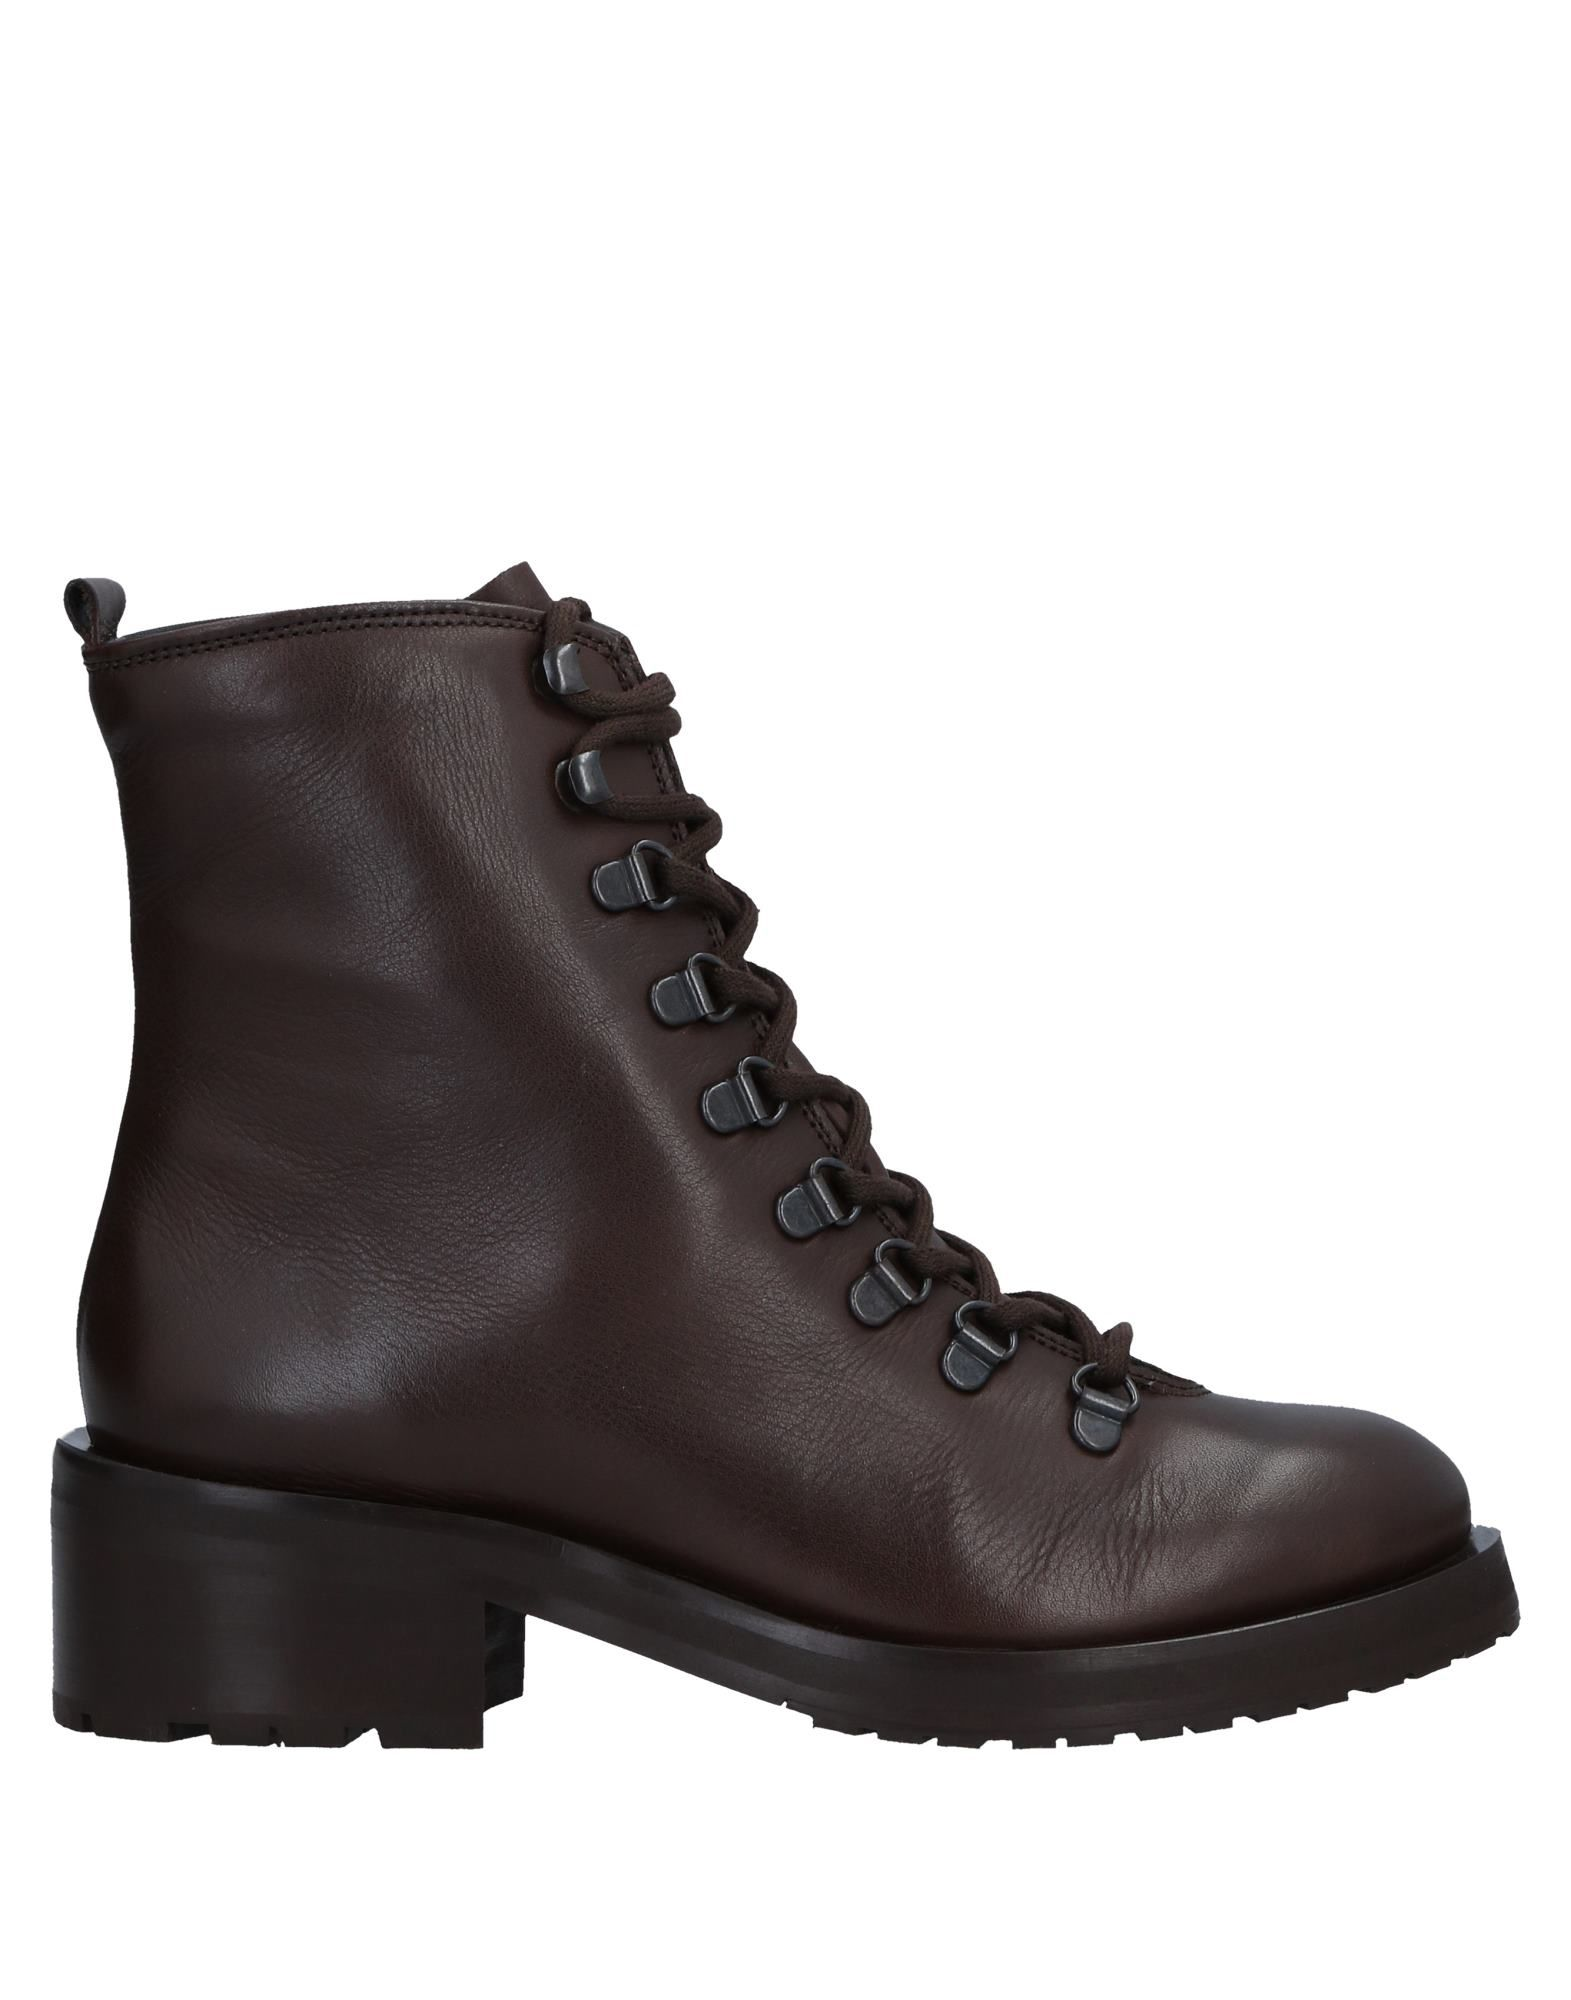 ROYAL REPUBLIQ Ankle Boot in Dark Brown